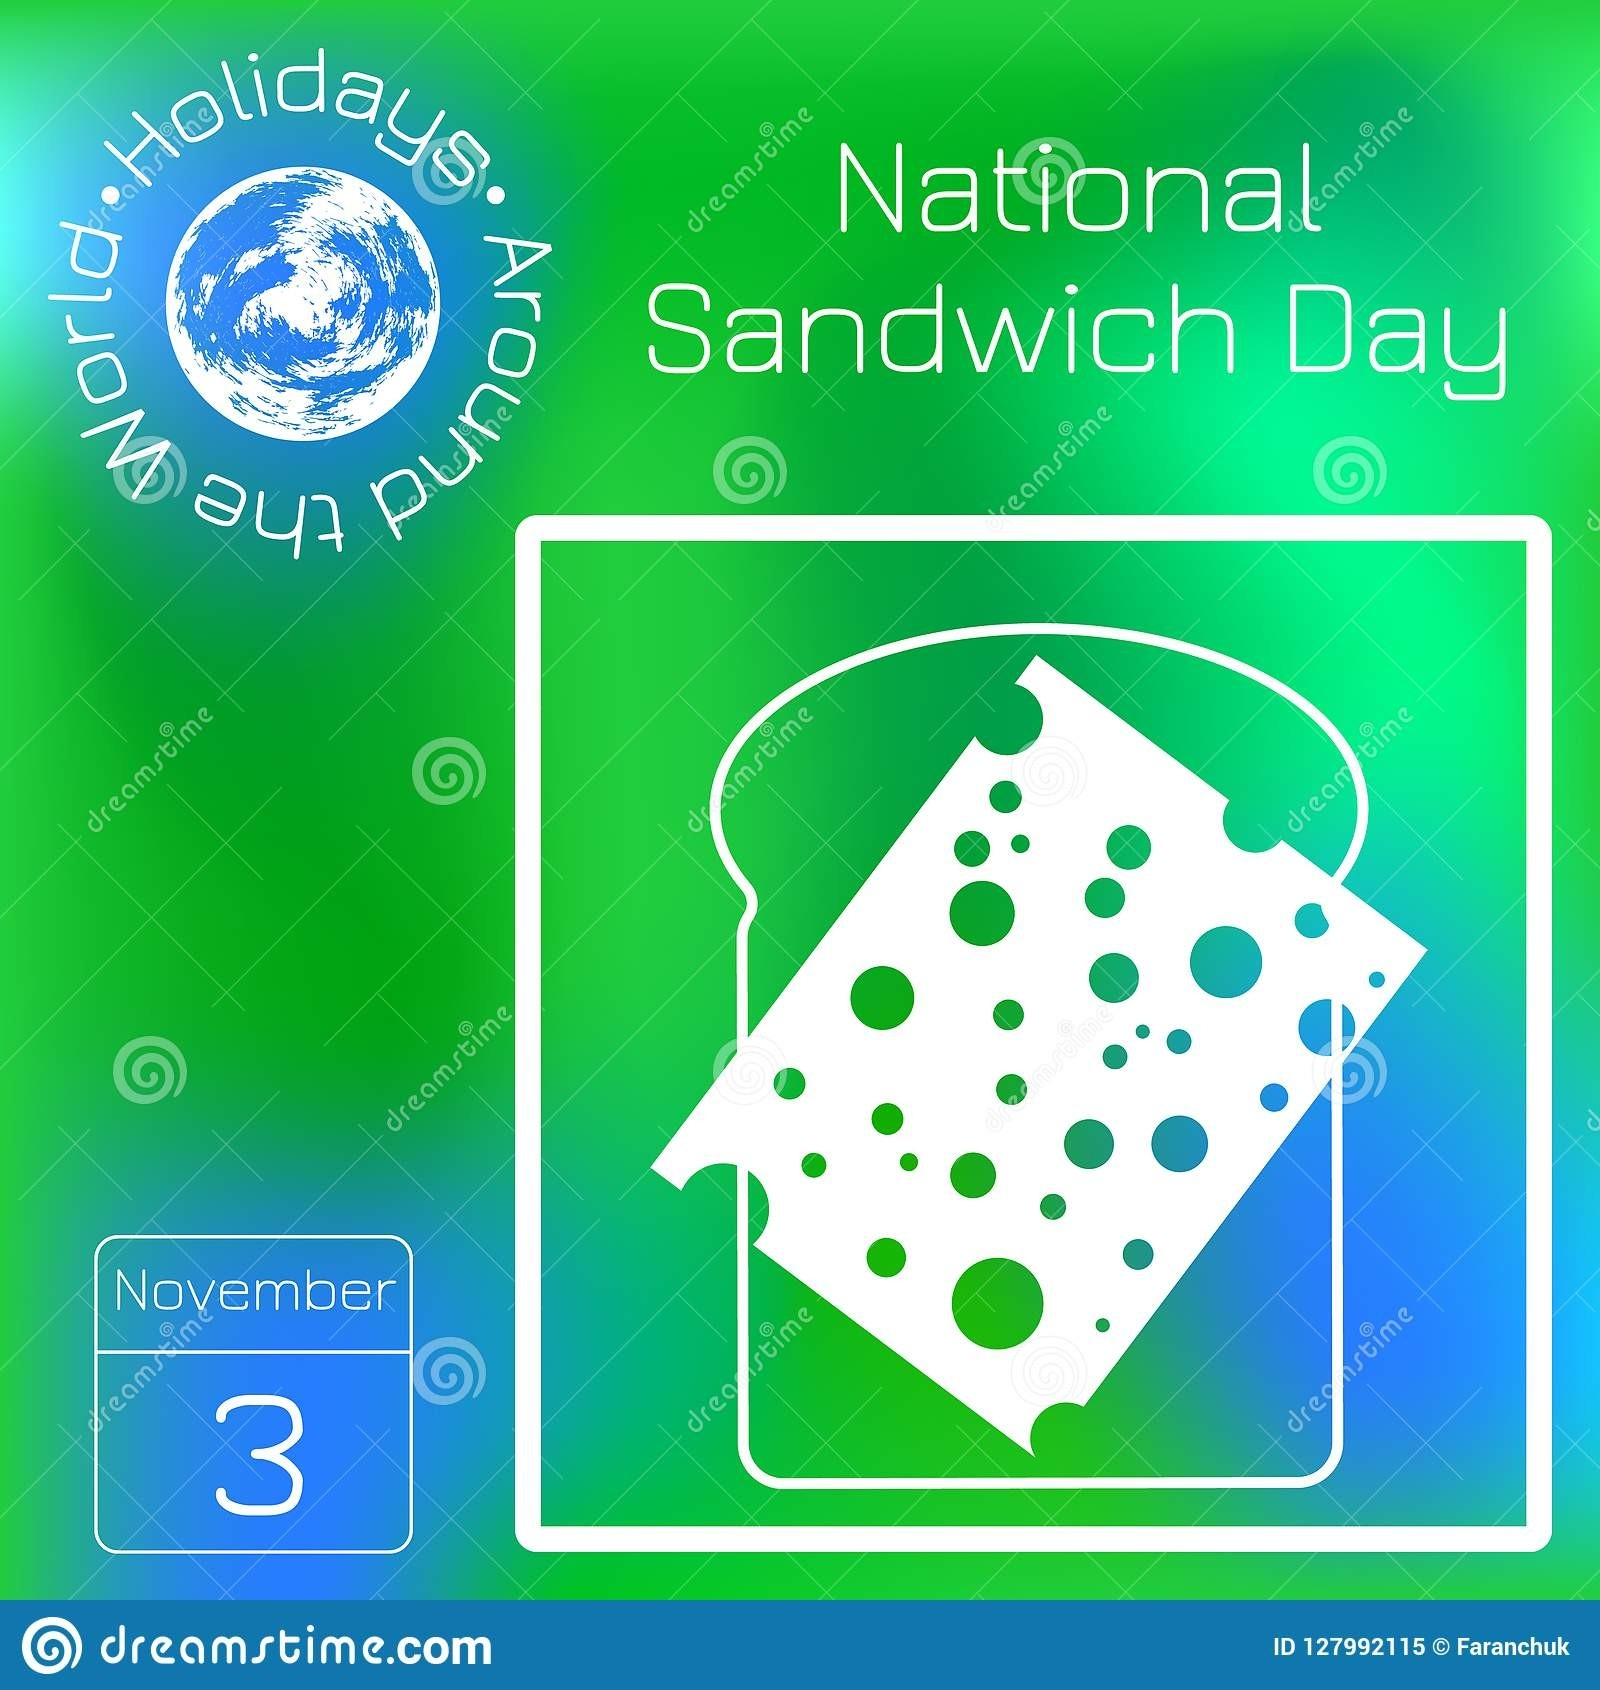 National Sandwich Day. 3 November. Food Holiday In The-National Food Holidays Calendar Download